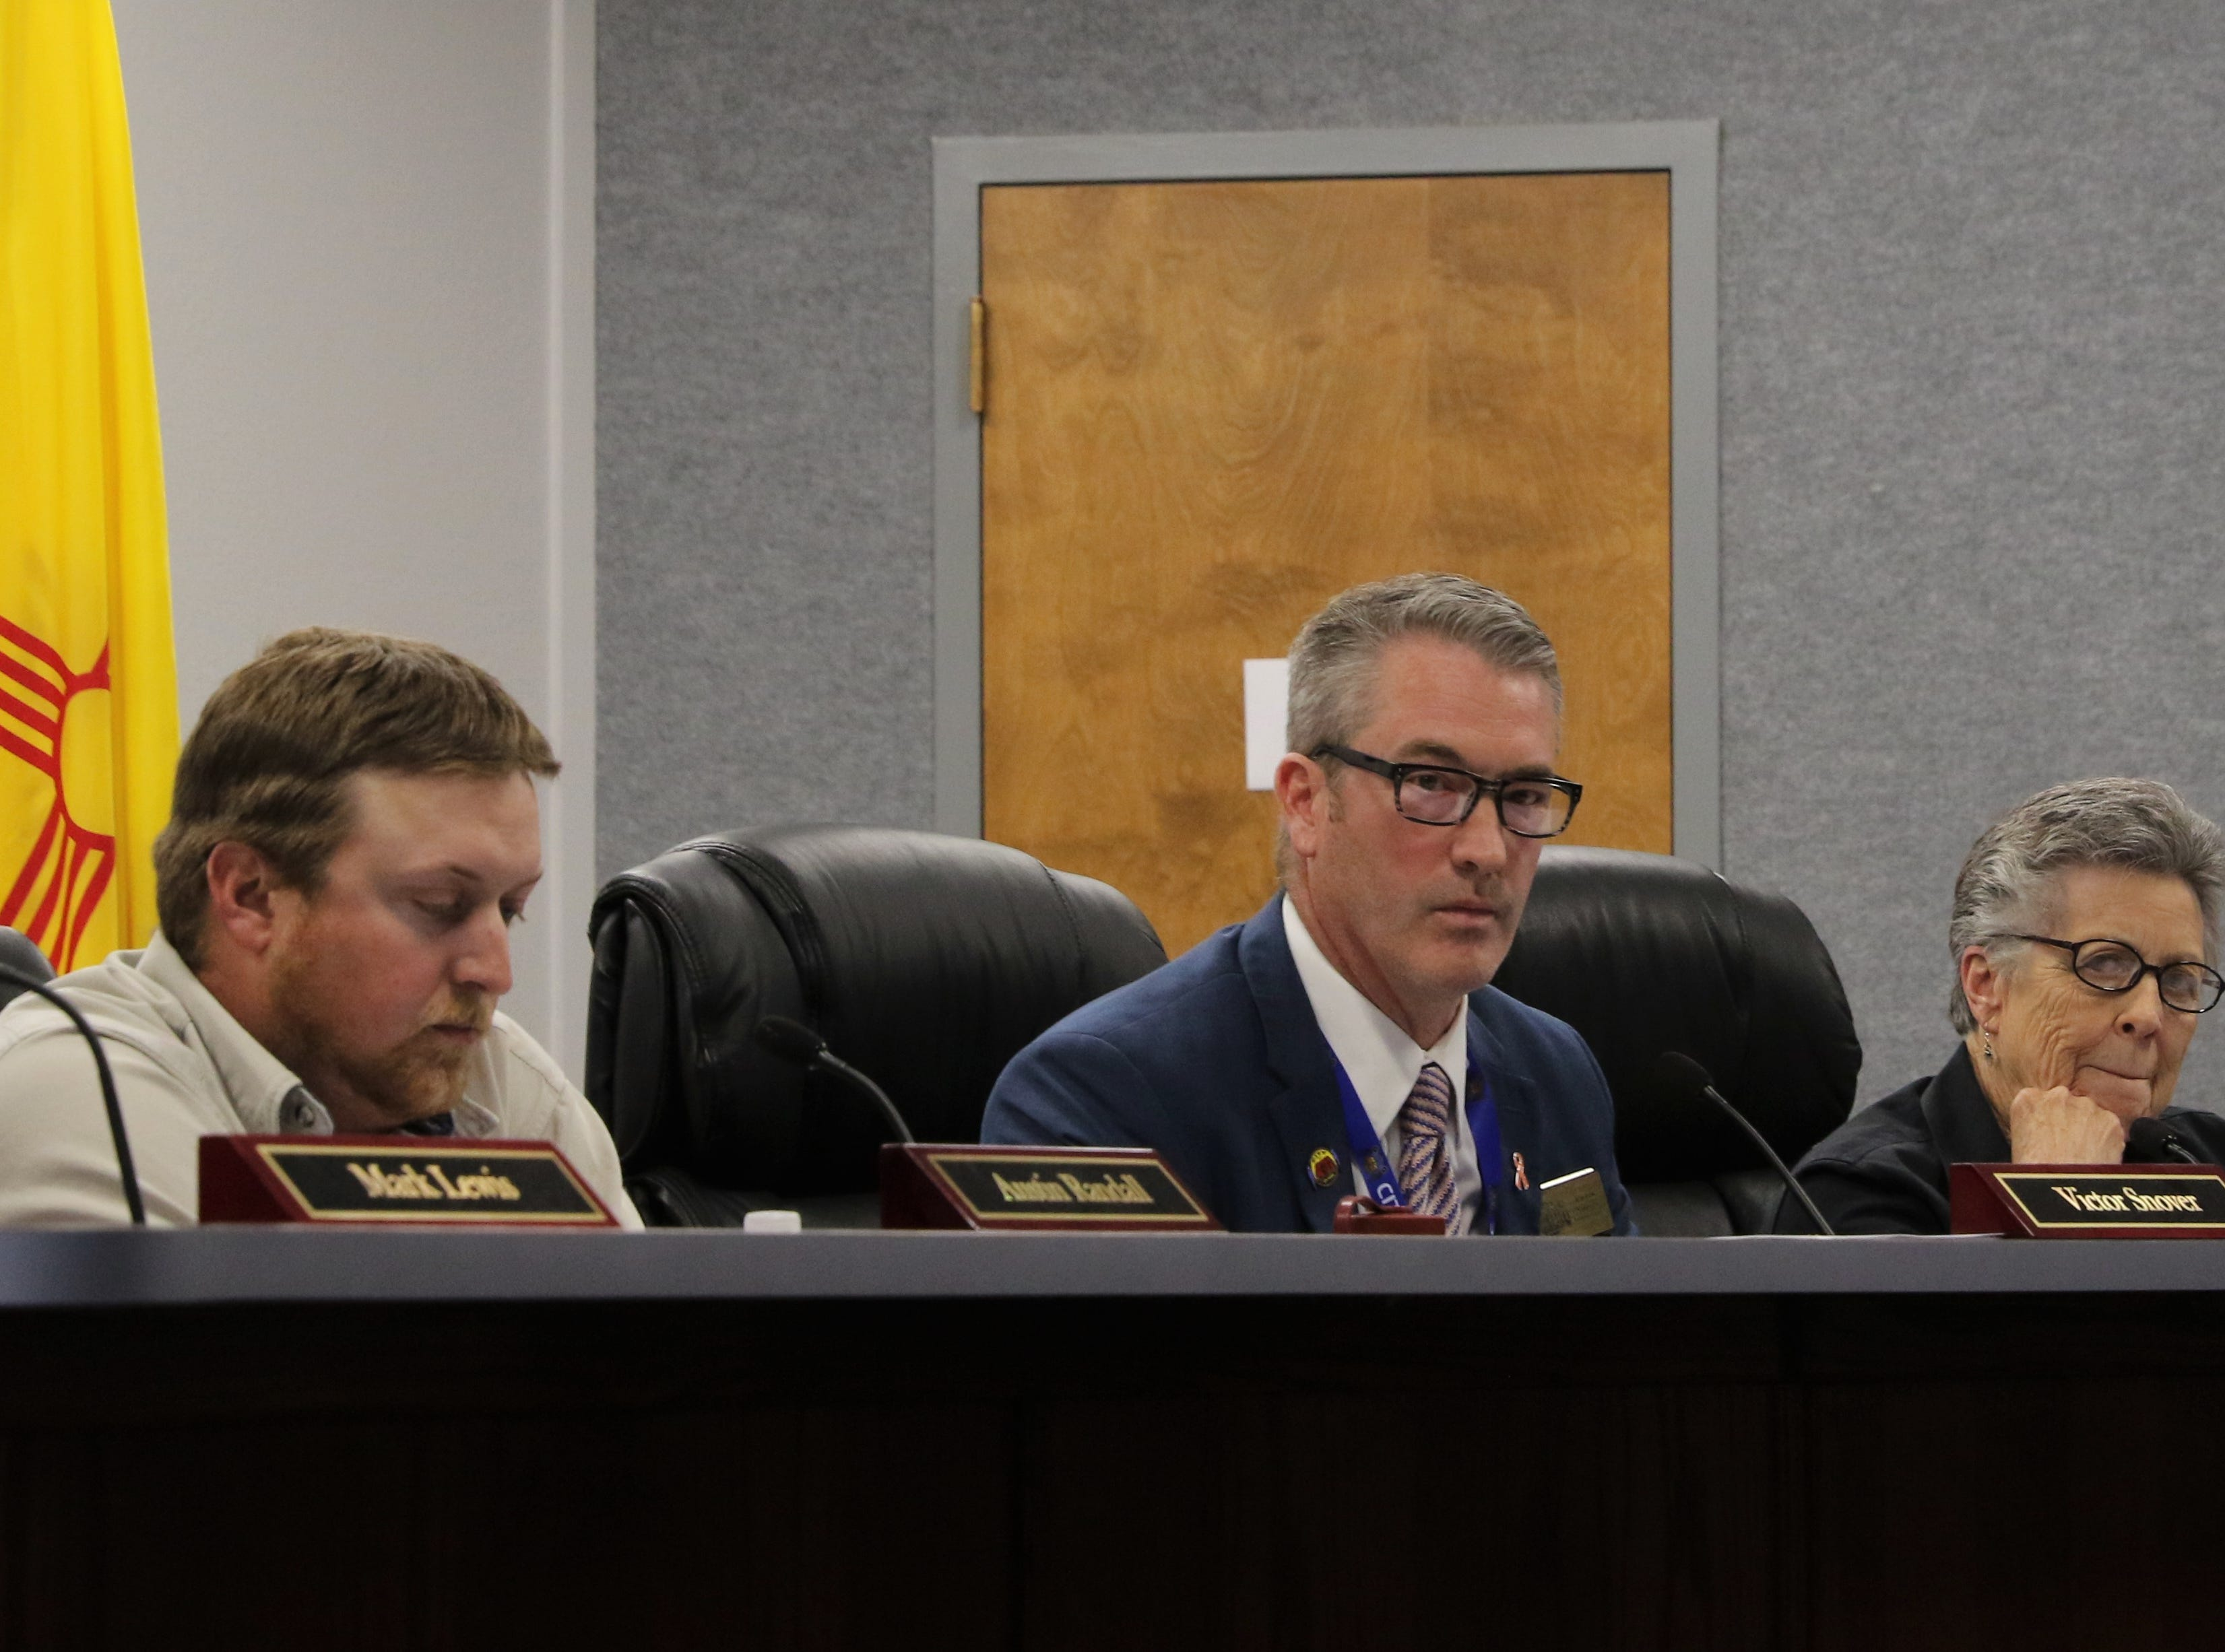 Commissioner Austin Randall, Mayor Victor Snover and Commissioner Roslyn Fry consider a Second Amendment Preservation City resolution, Tuesday, March 26, 2019, during a City Commission meeting.